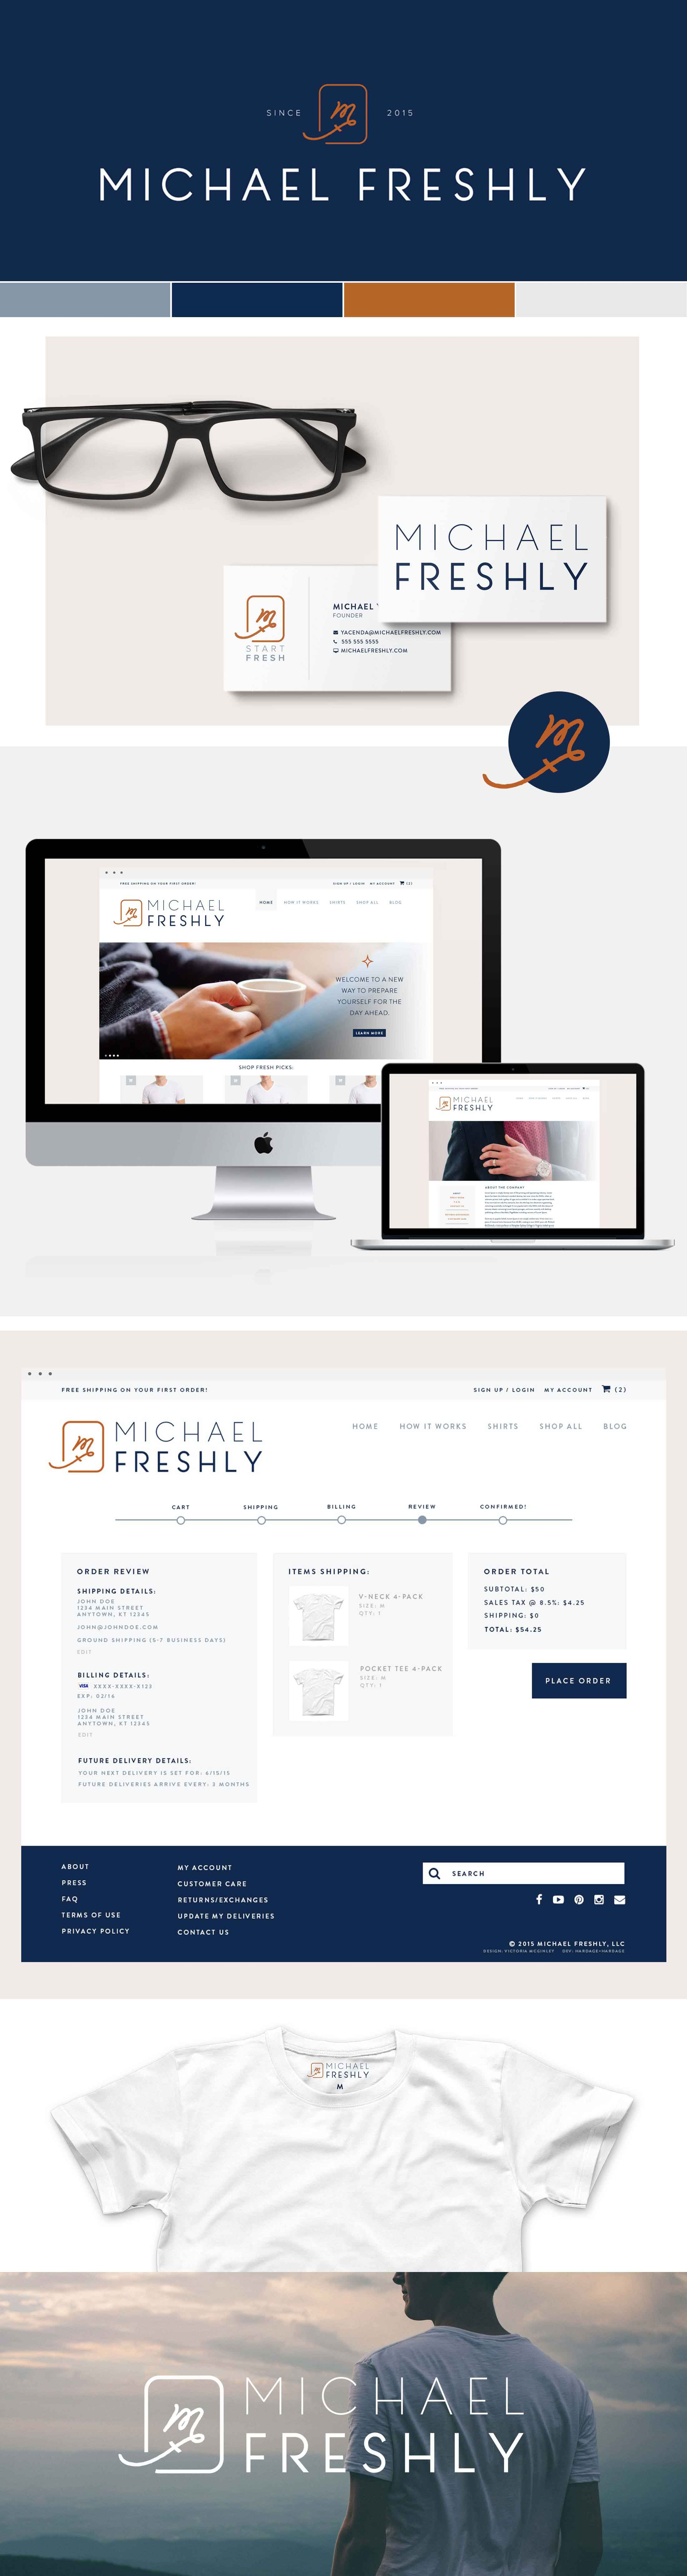 Michael Freshly mens t-shirts | identity and site concept design by Victoria McGinley Studio